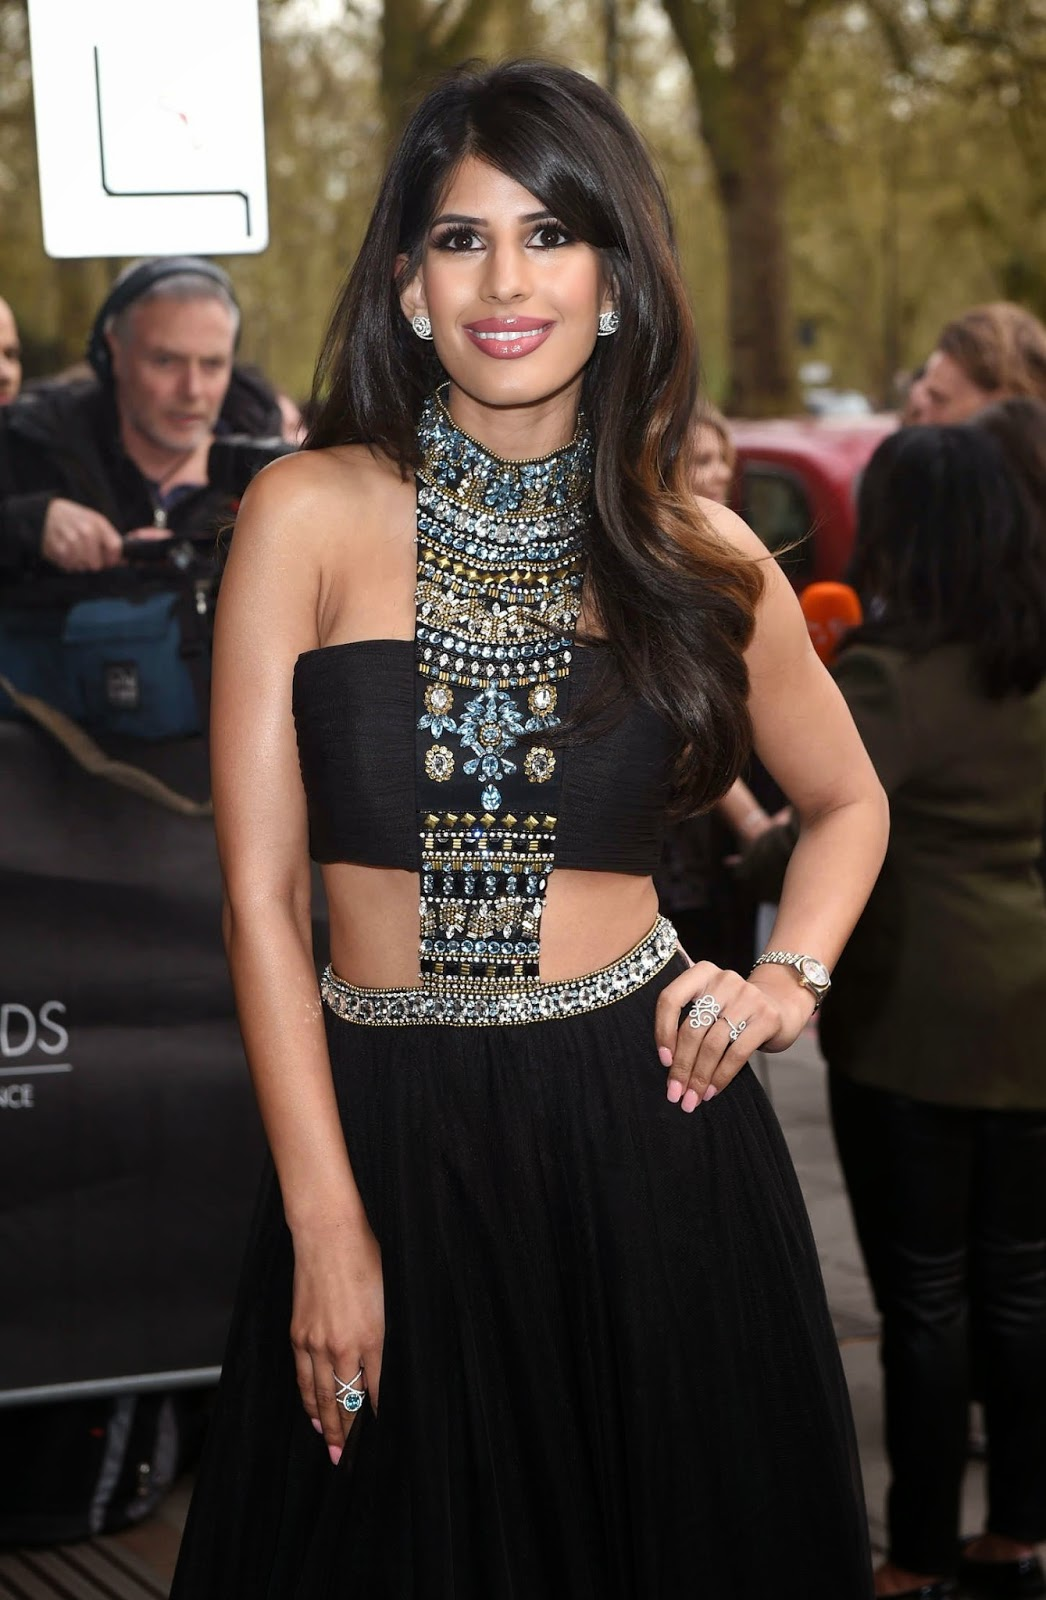 Television Personality, Singer, Actress @ Jasmin Walia at Asian Awards 2015 in London